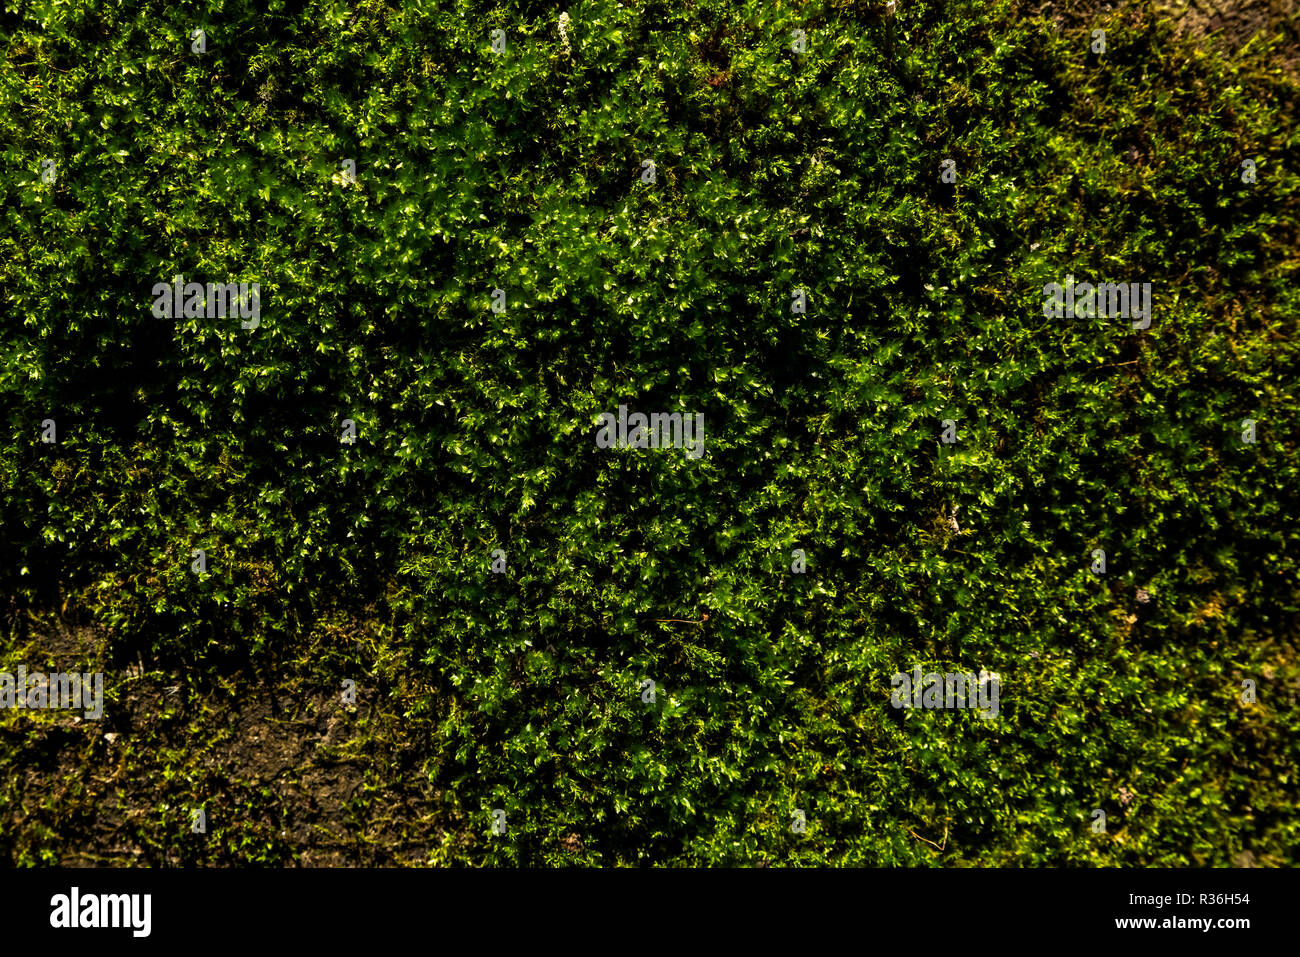 spontaneous growth of moss - Stock Image